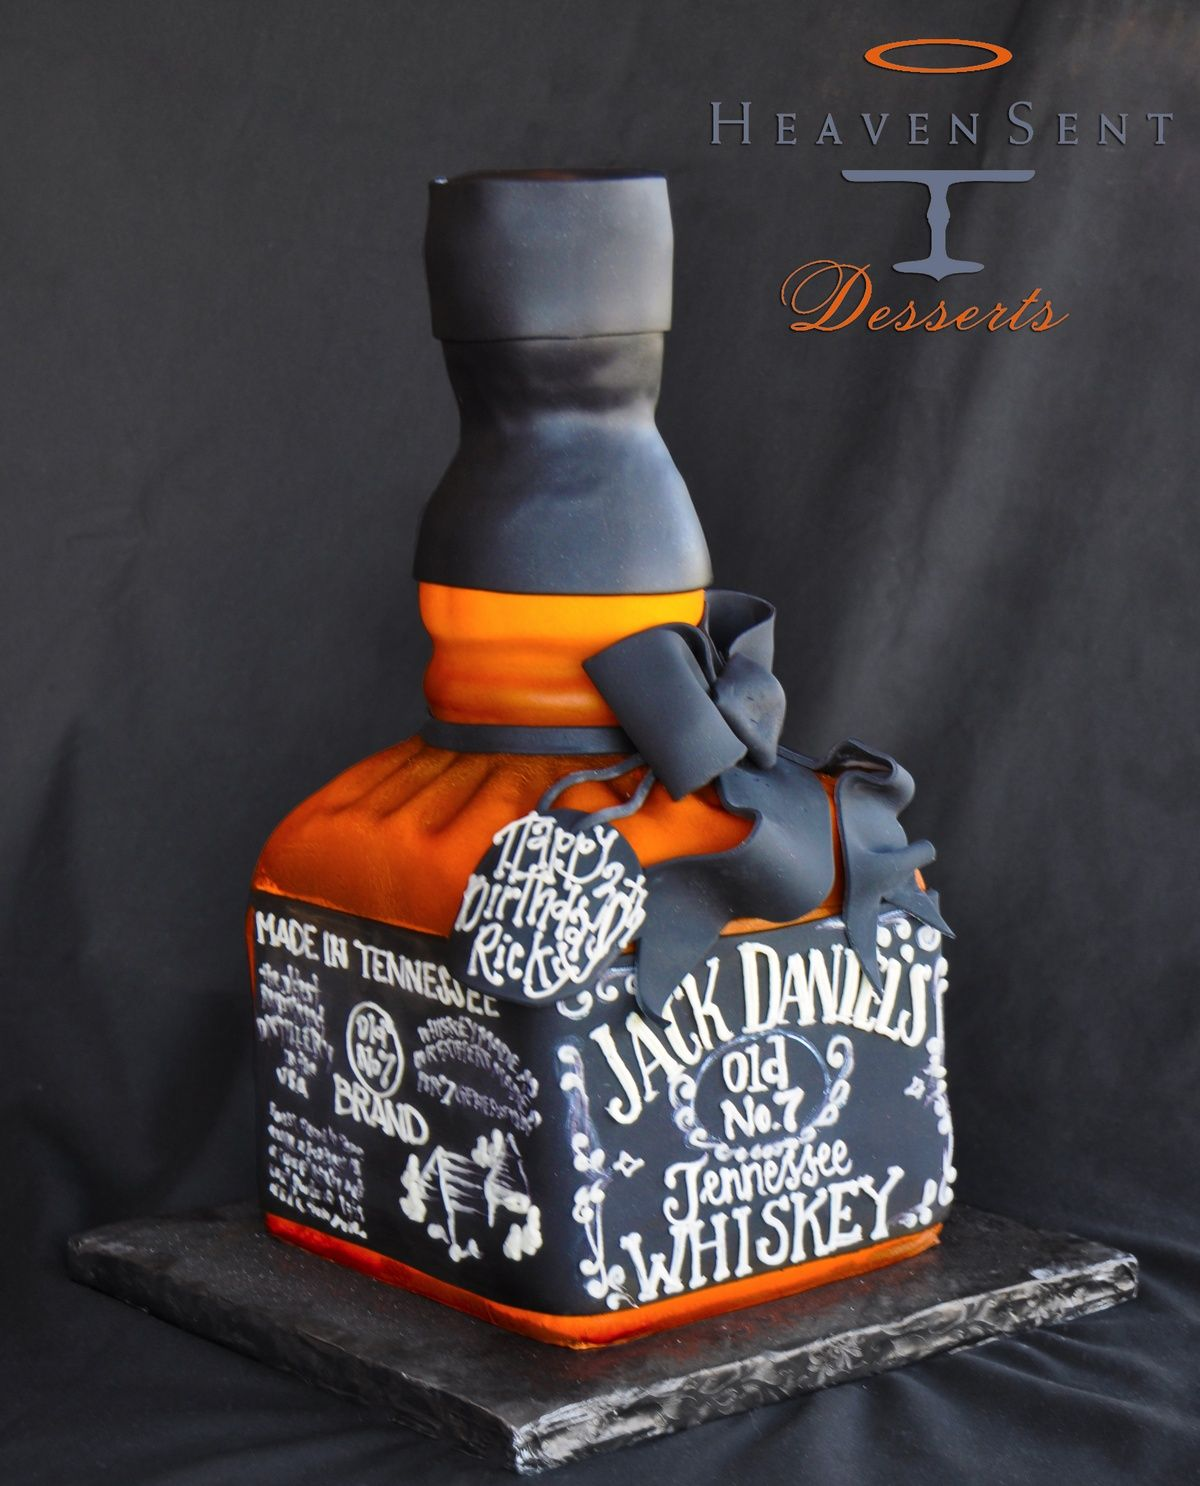 #JackDaniels cake - For all your cake decorating supplies, please visit craftcompany .co.uk